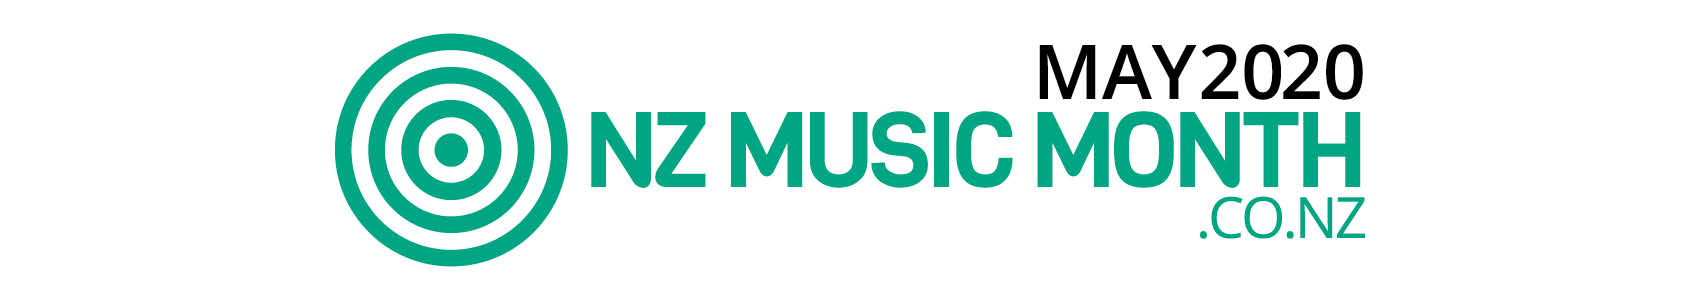 NZ Music Month 2020